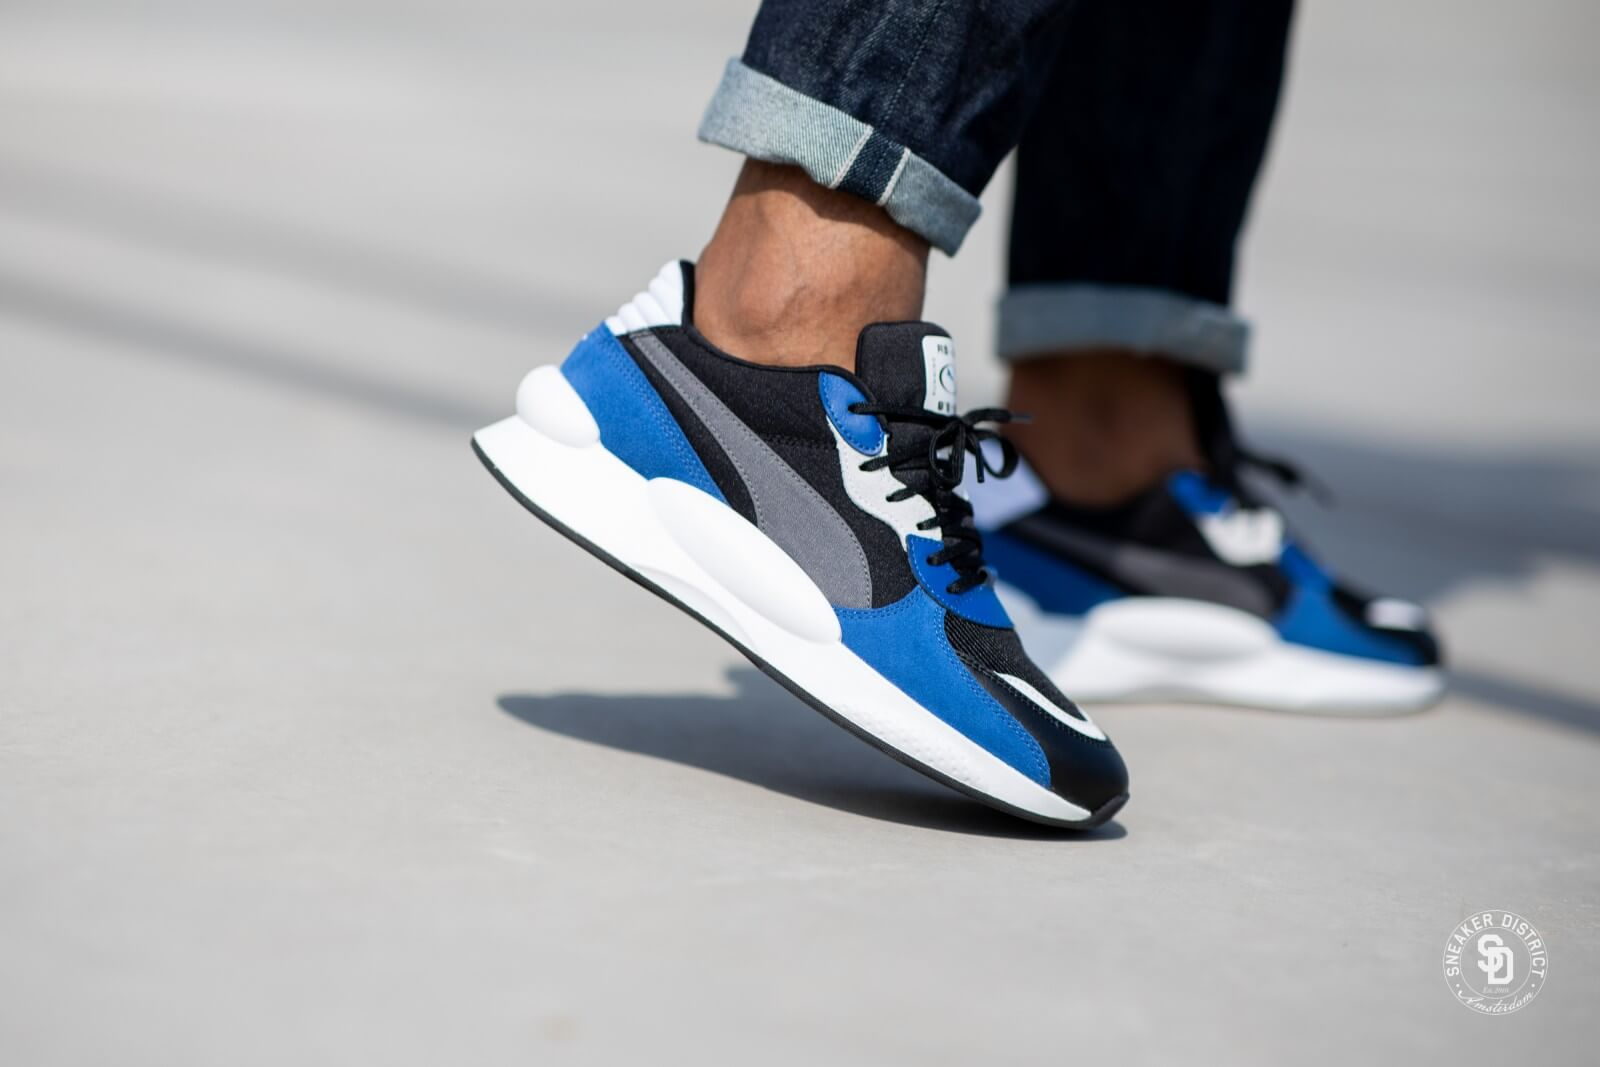 Puma RS 9.8 Space Puma Black/Galaxy Blue - 370230-03